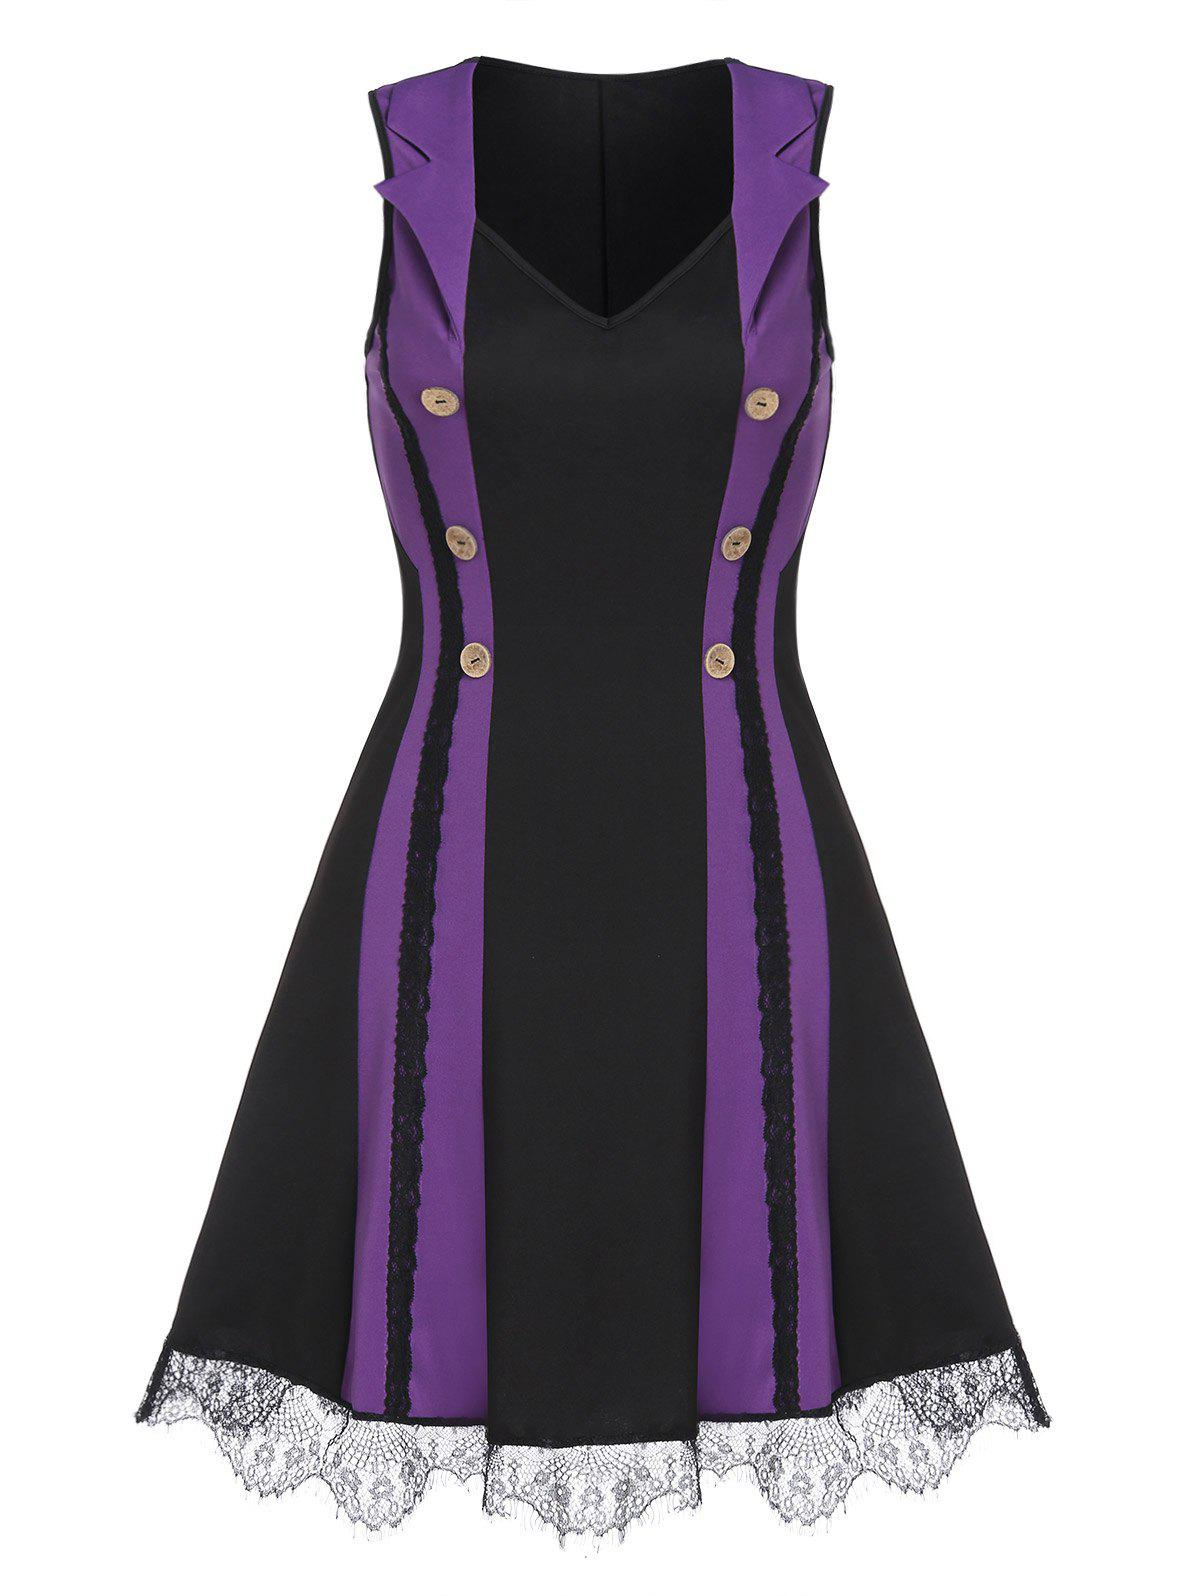 Sleeveless Mock Button Lace Trim Contrast Mini Dress - PURPLE XL